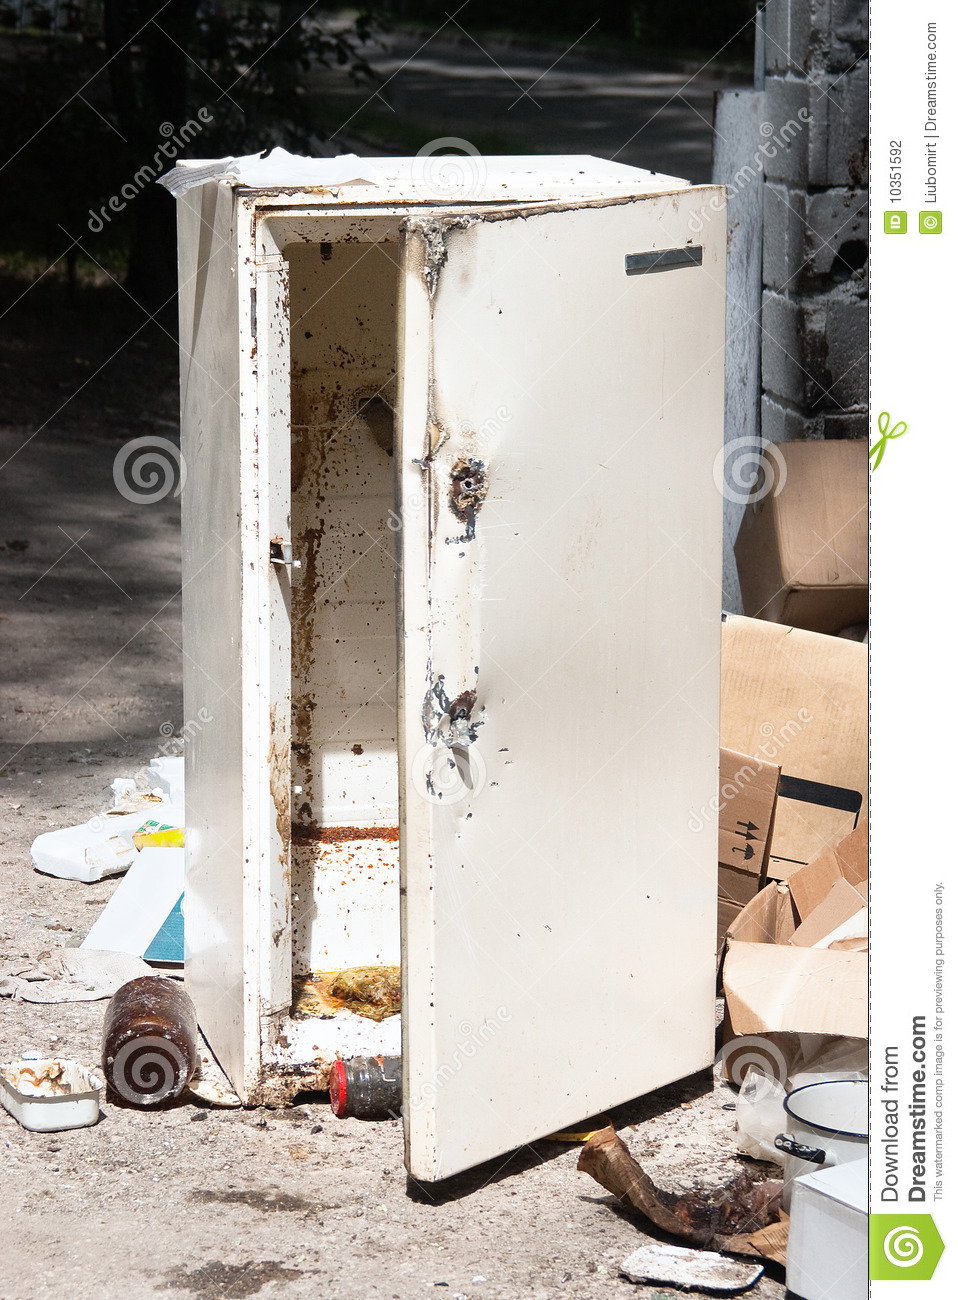 Old Refrigerator At The Dump Stock Photo Image Of Dirty